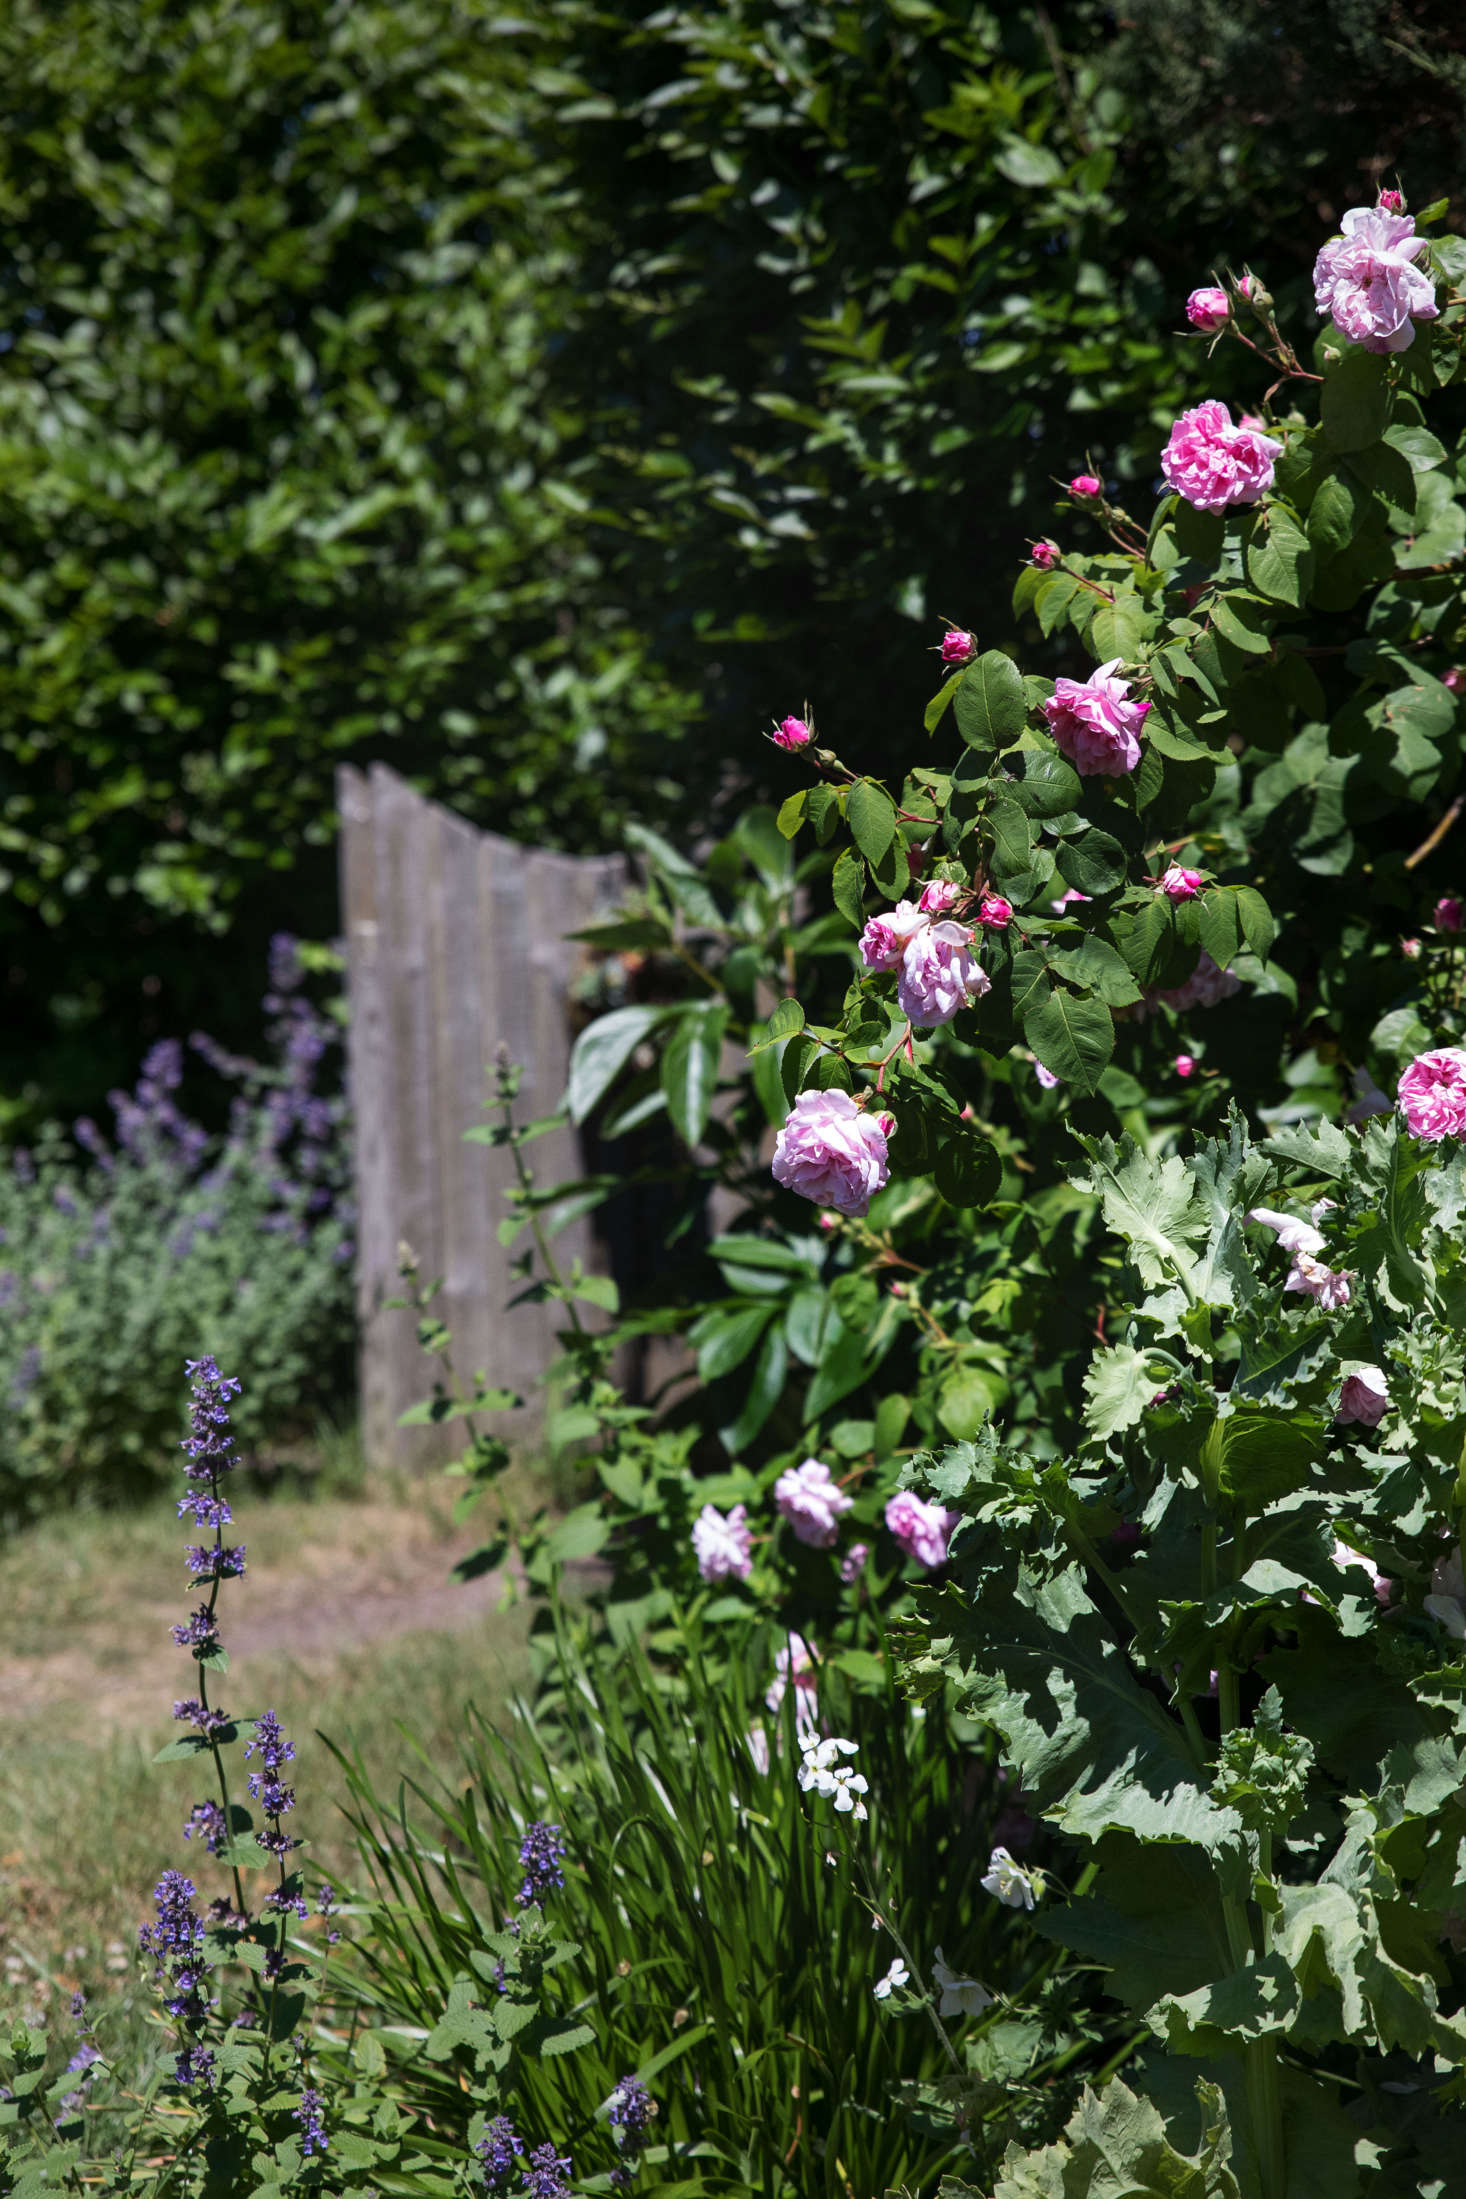 Another heirloom rose, Fantin-Latour, rests on the other side of the privet hedge and gate.